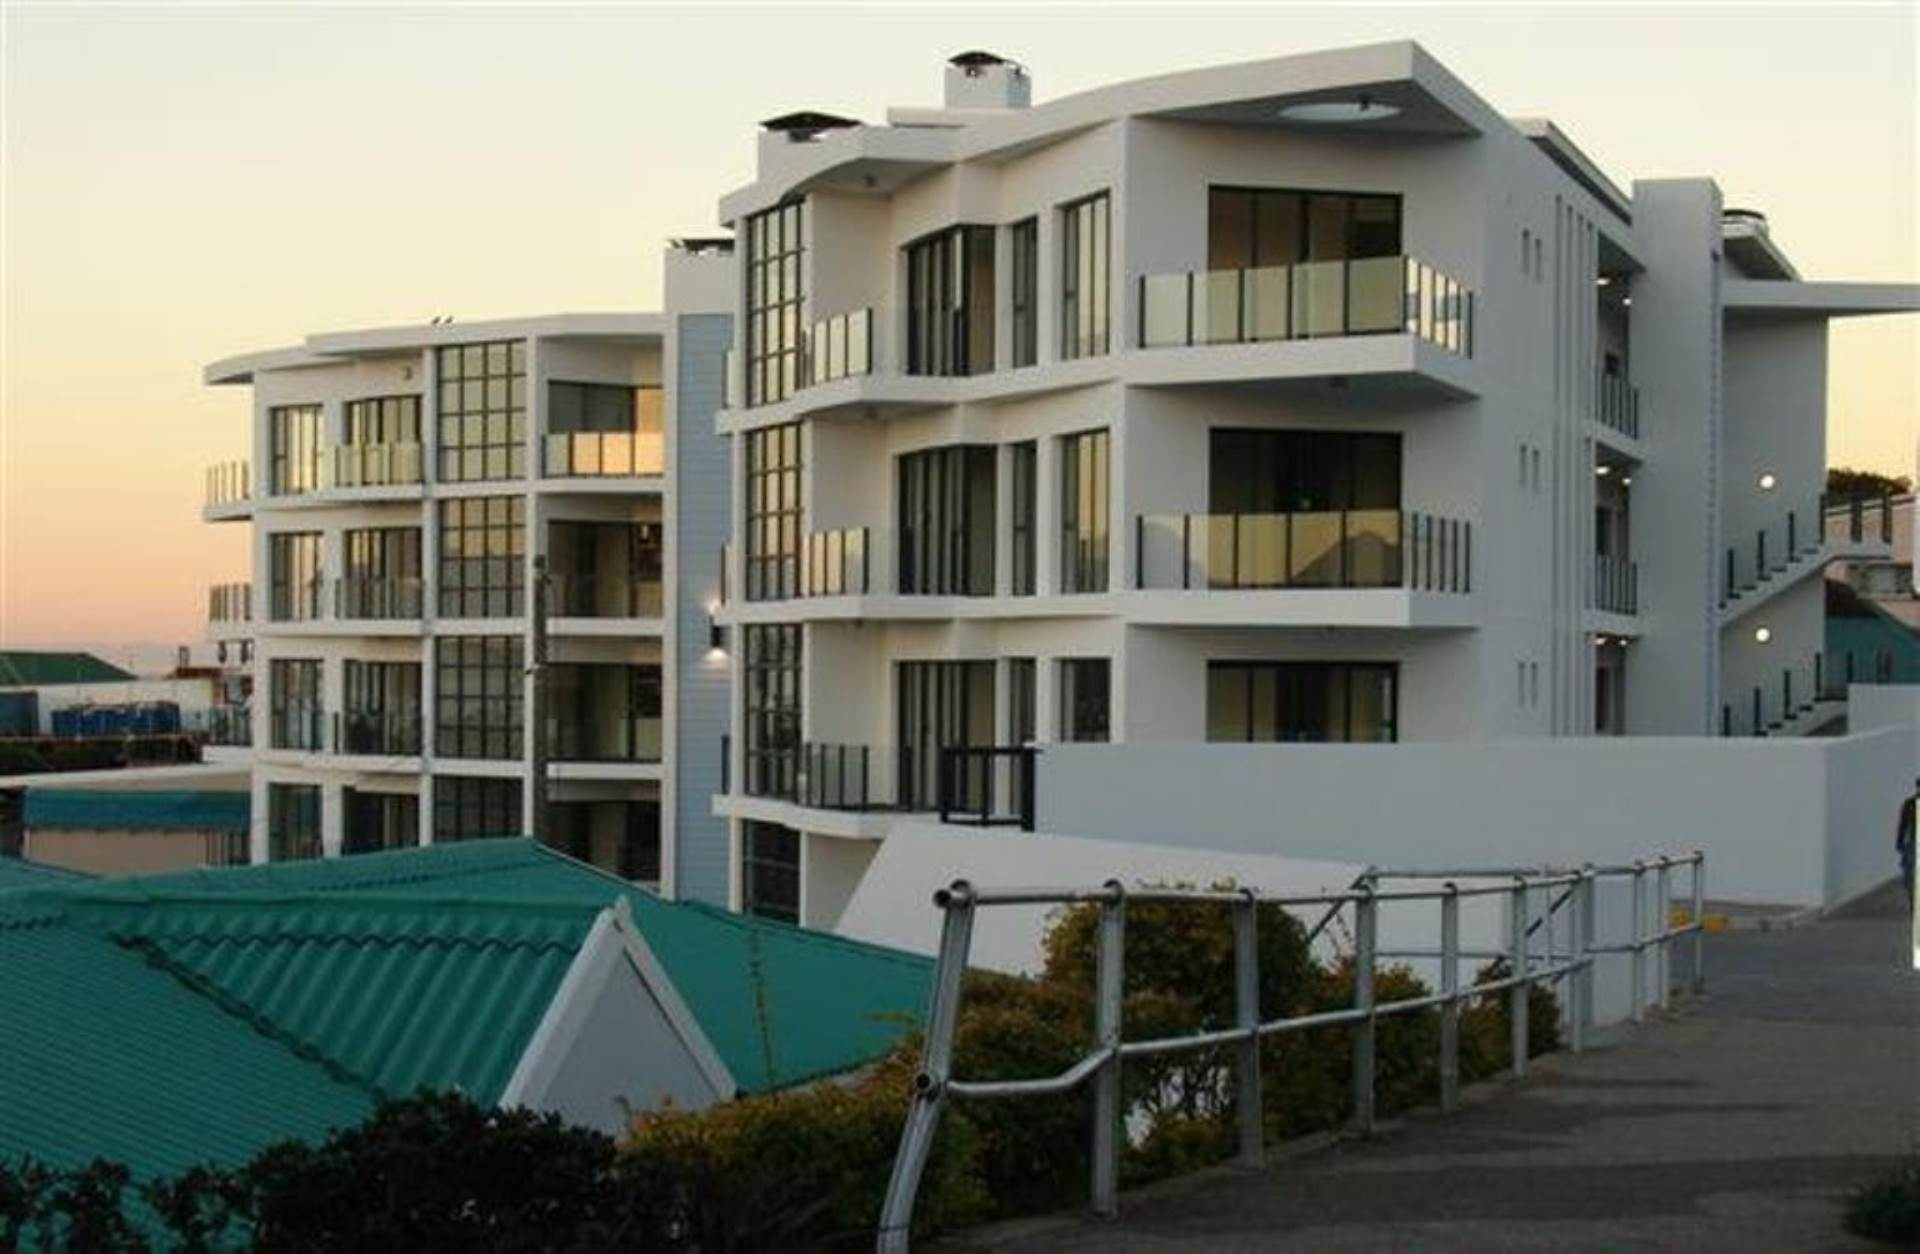 3 BedroomApartment For Sale In Mossel Bay Central